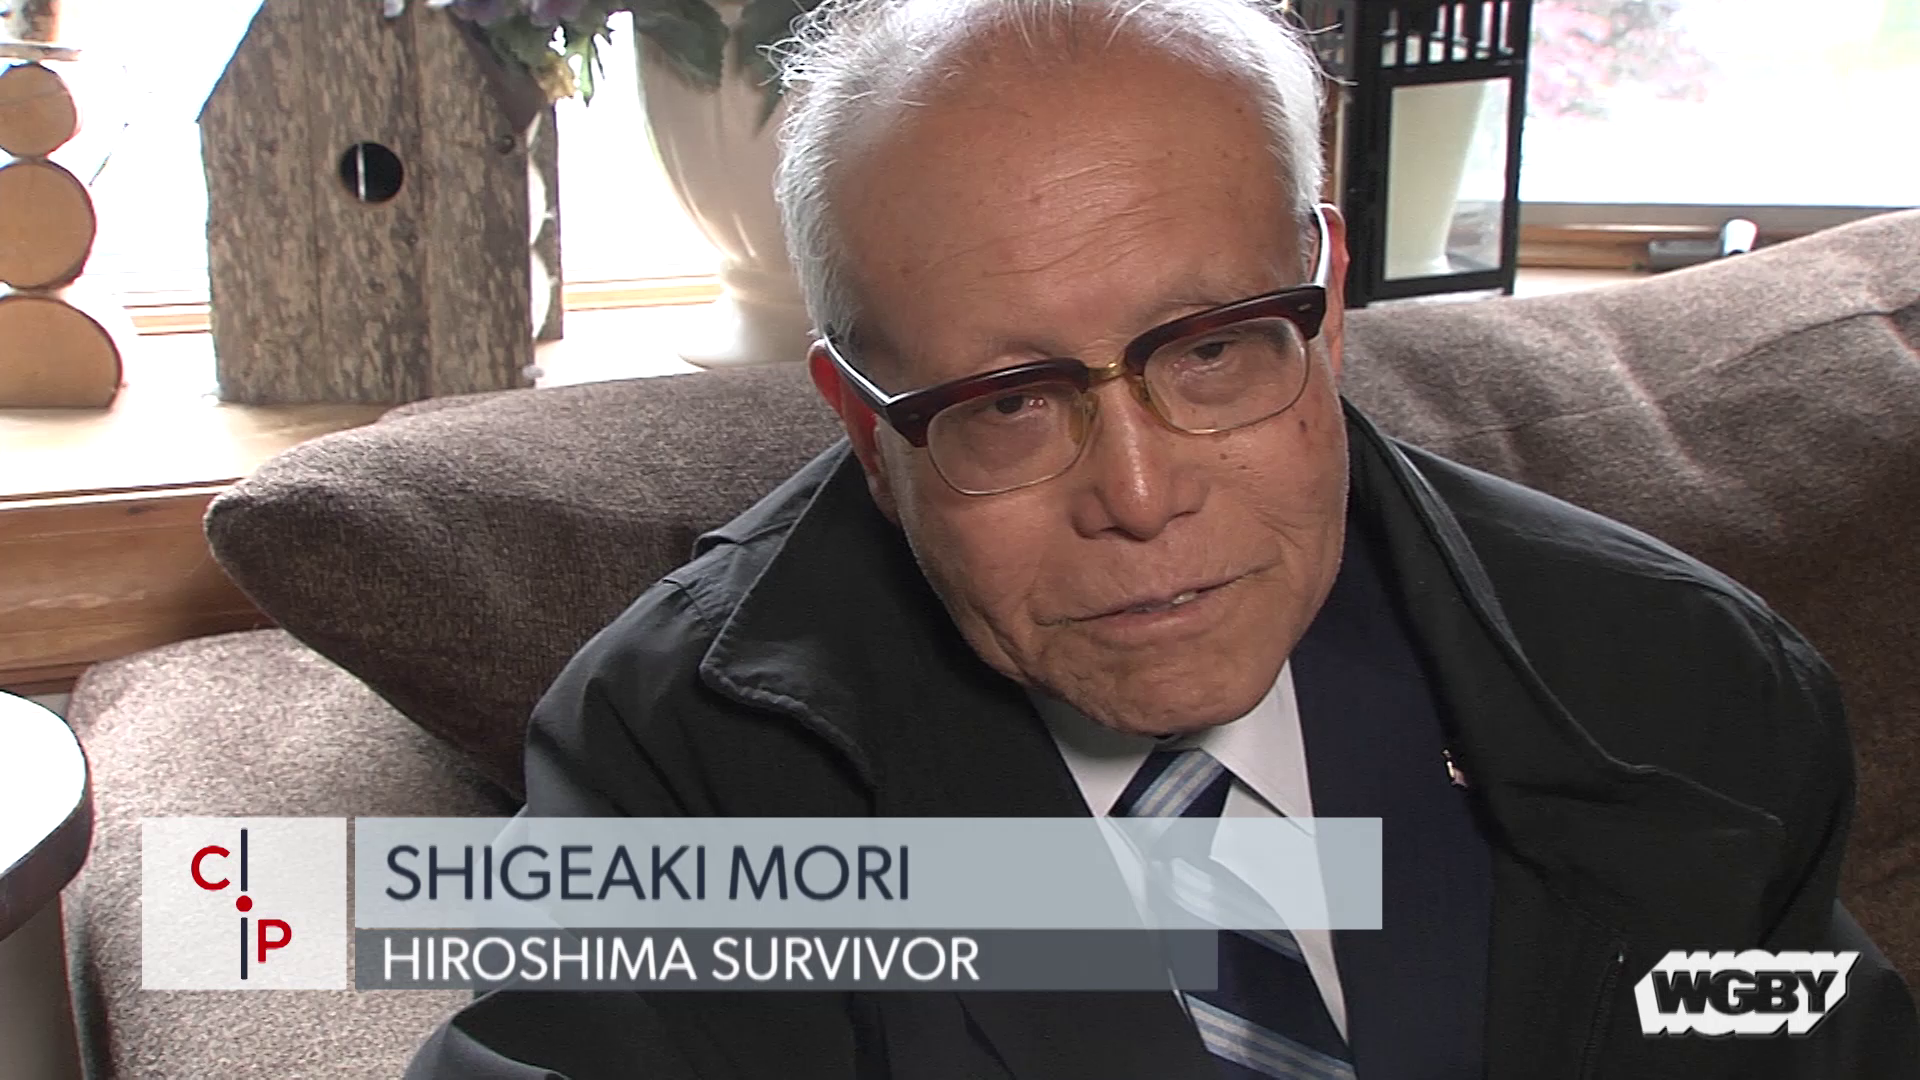 When the United States dropped an atomic bomb on the Japanese city of Hiroshima during WWII, several American prisoners of war were among those killed. A Japanese man who dedicated his life to finding those families is spending time with them in the United States, in his first ever visit to the country.